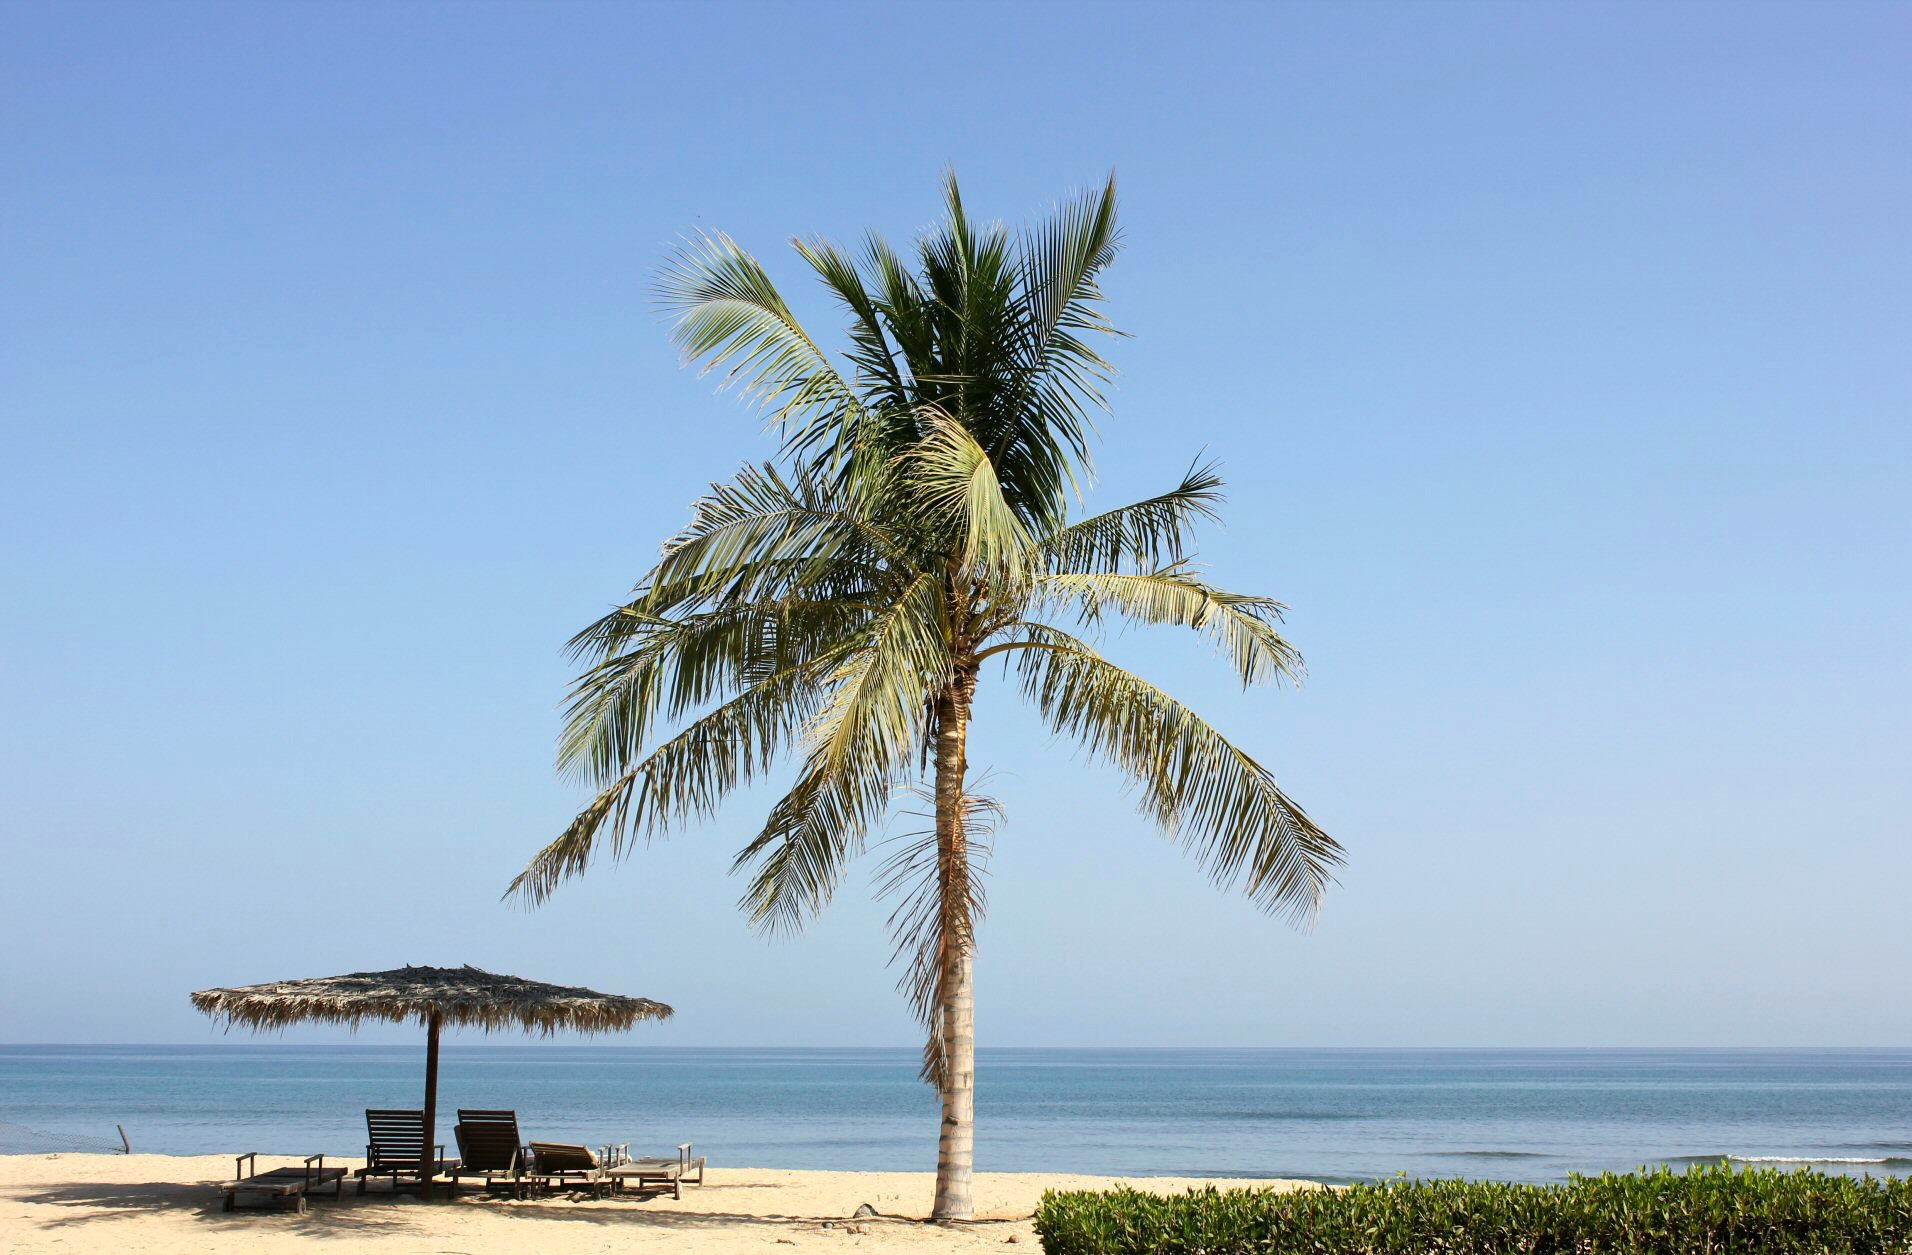 Two loungers under a palm umbrella and a palm tree on the beach at As Sifa, not far from Muscat, Oman - my nine reasons to visit Oman with kids